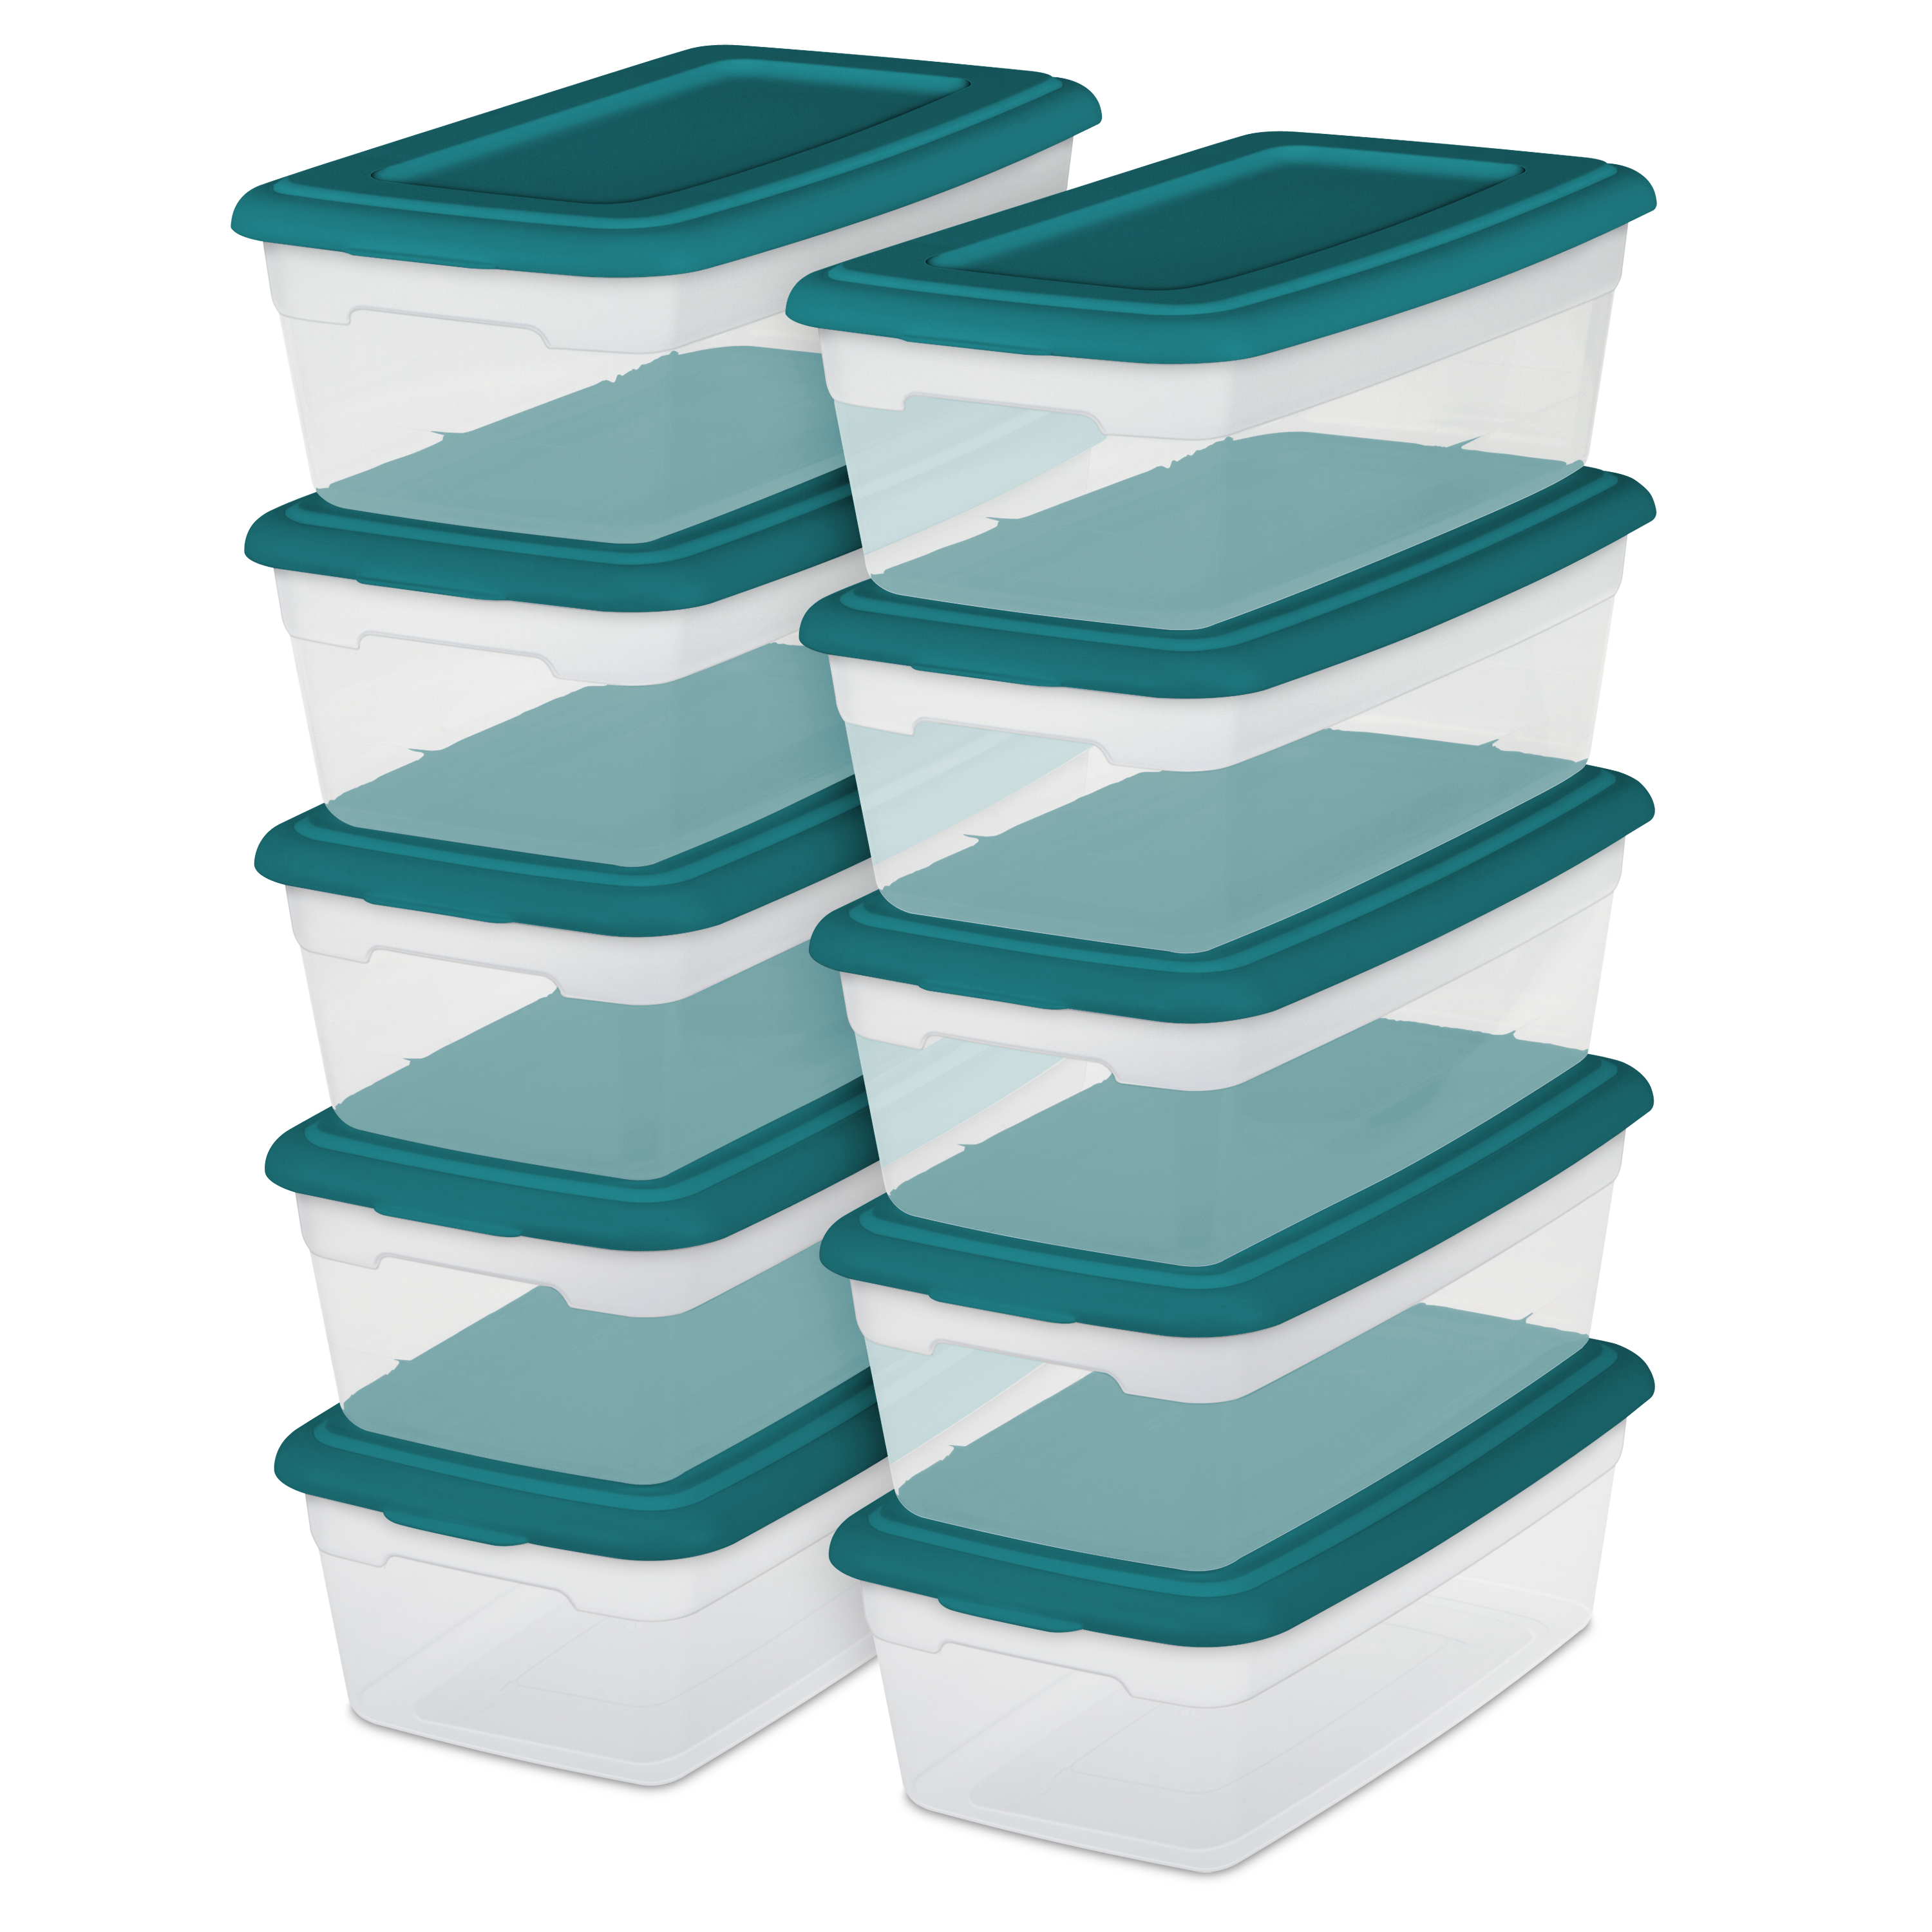 Sterilite 6 Qt./5.7 L Storage Boxes, Teal Sachet (Set of 10 ...